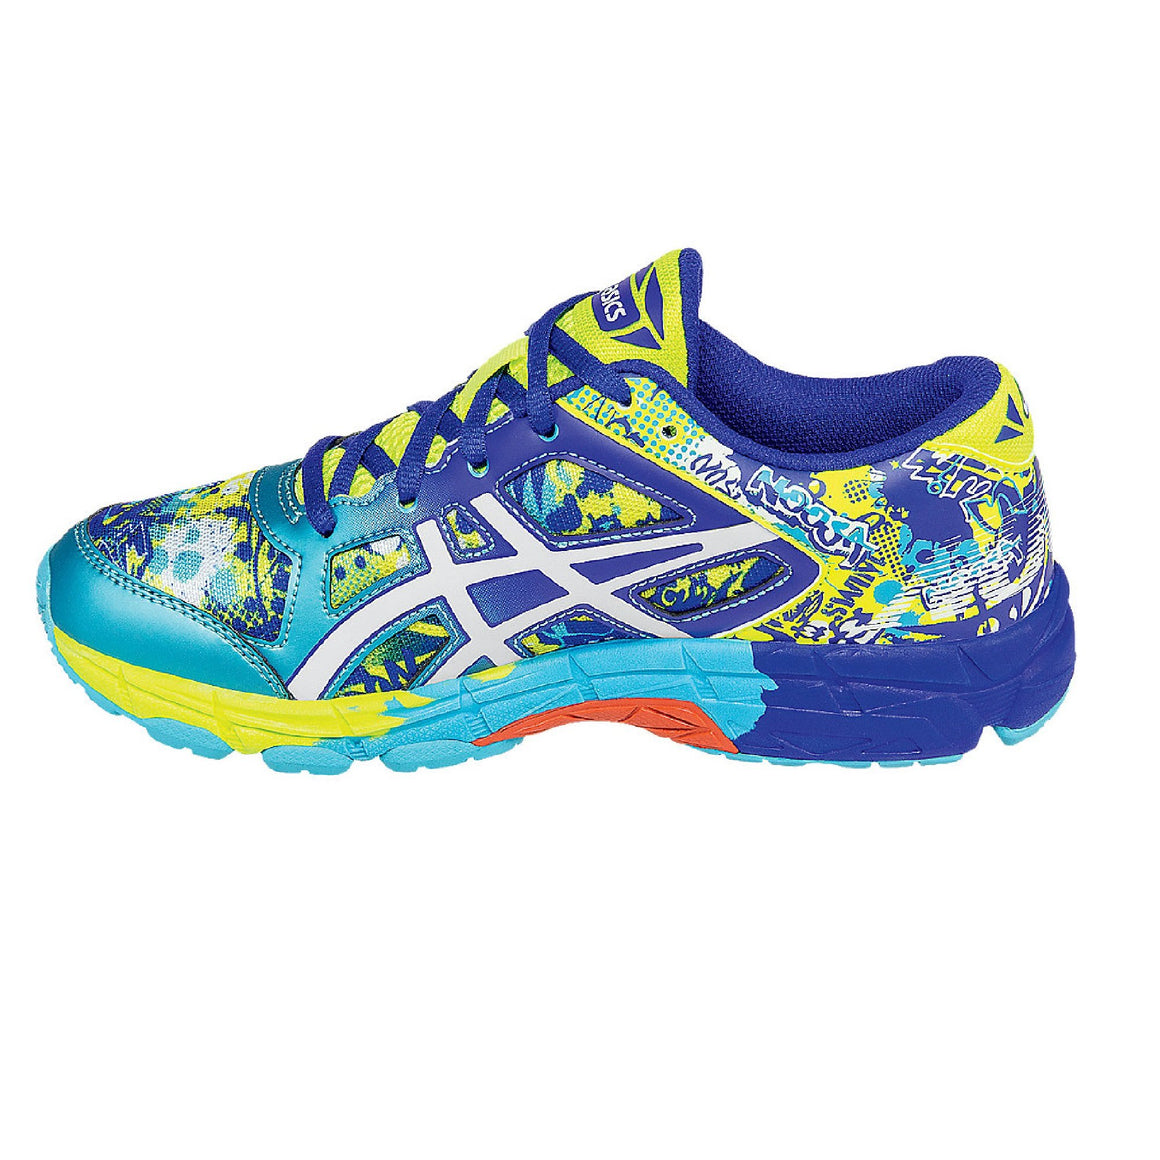 Kids Asics Gel Noosa TRI 11 GS Running Shoe, Scuba Blue